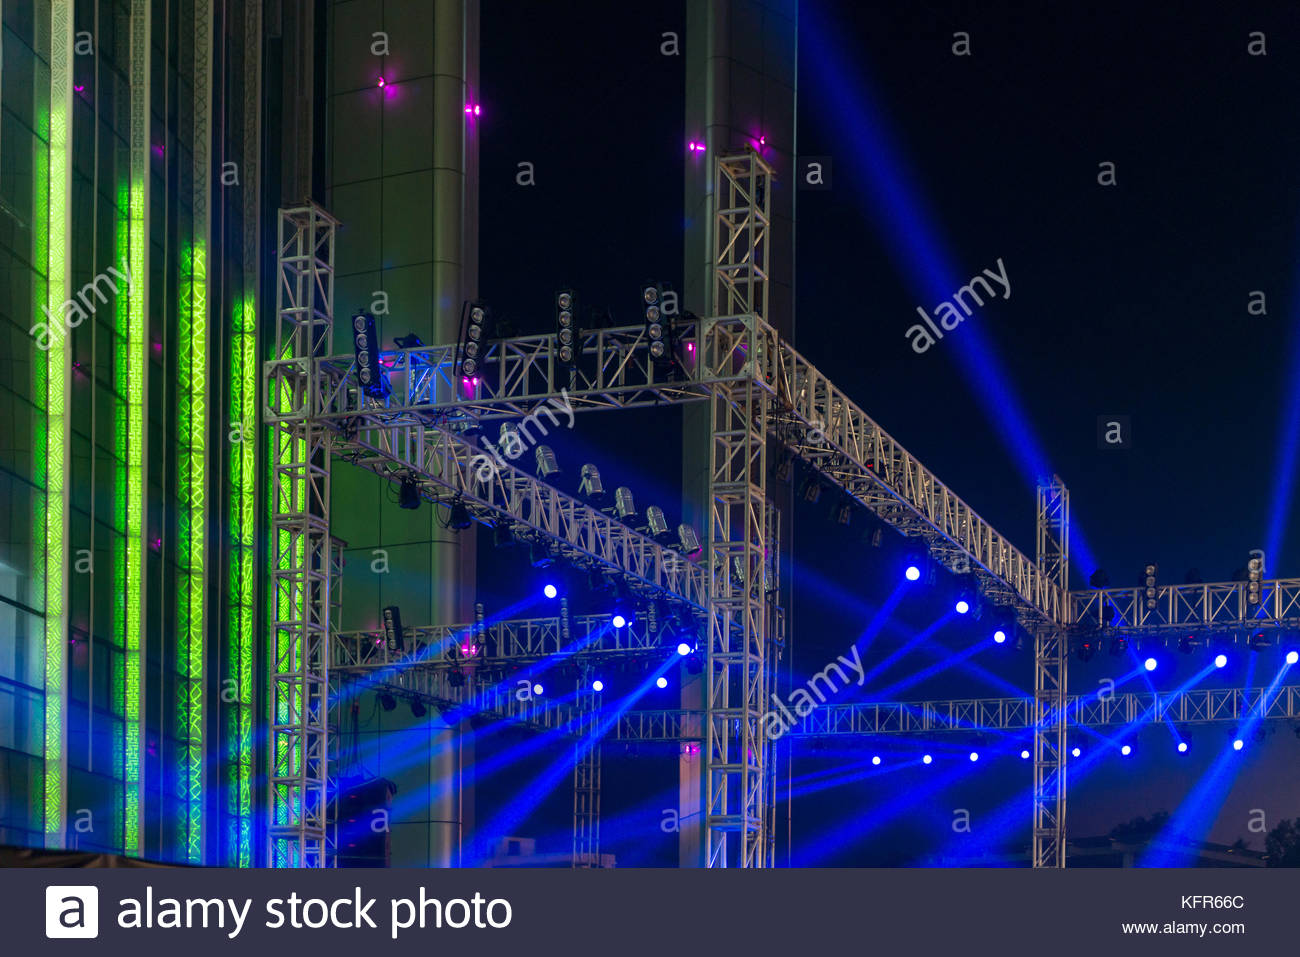 multiple spotlights on a theatre stage lighting rig - Stock Image  sc 1 st  Alamy & Lighting Rig With Backdrop Stock Photos u0026 Lighting Rig With ... azcodes.com